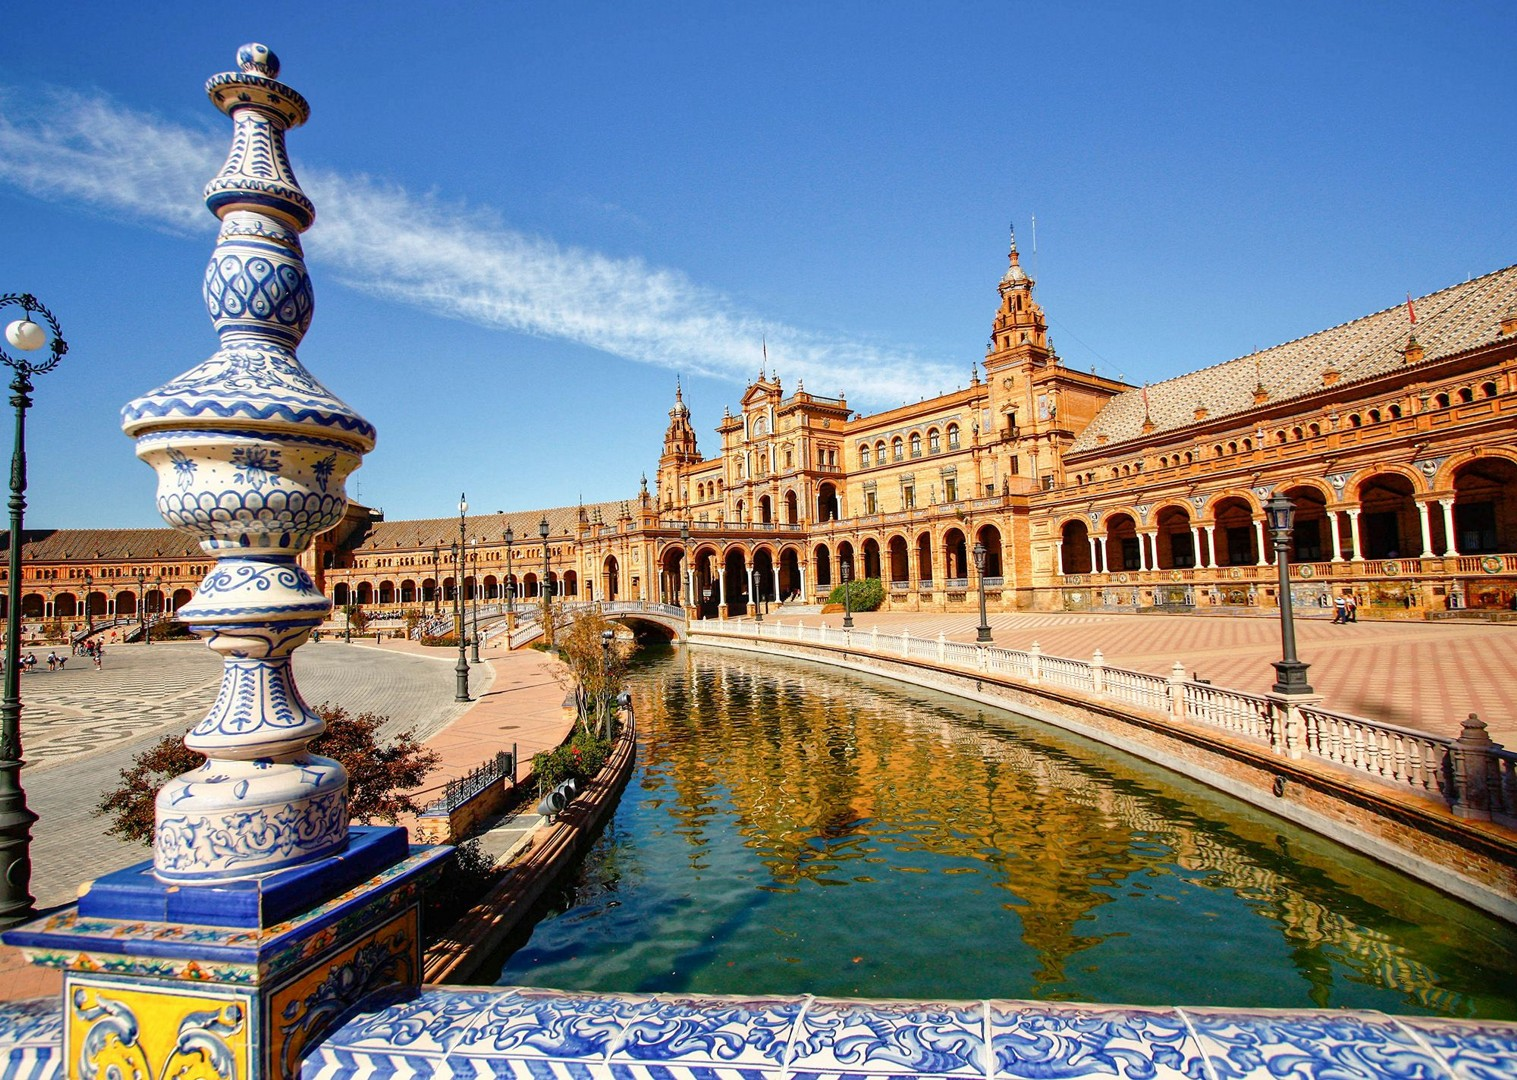 seville-southern-spain-granada-to-seville-guided-leisure-cycling-holiday.jpg - Spain - Granada to Seville - Guided Leisure Cycling Holiday - Leisure Cycling